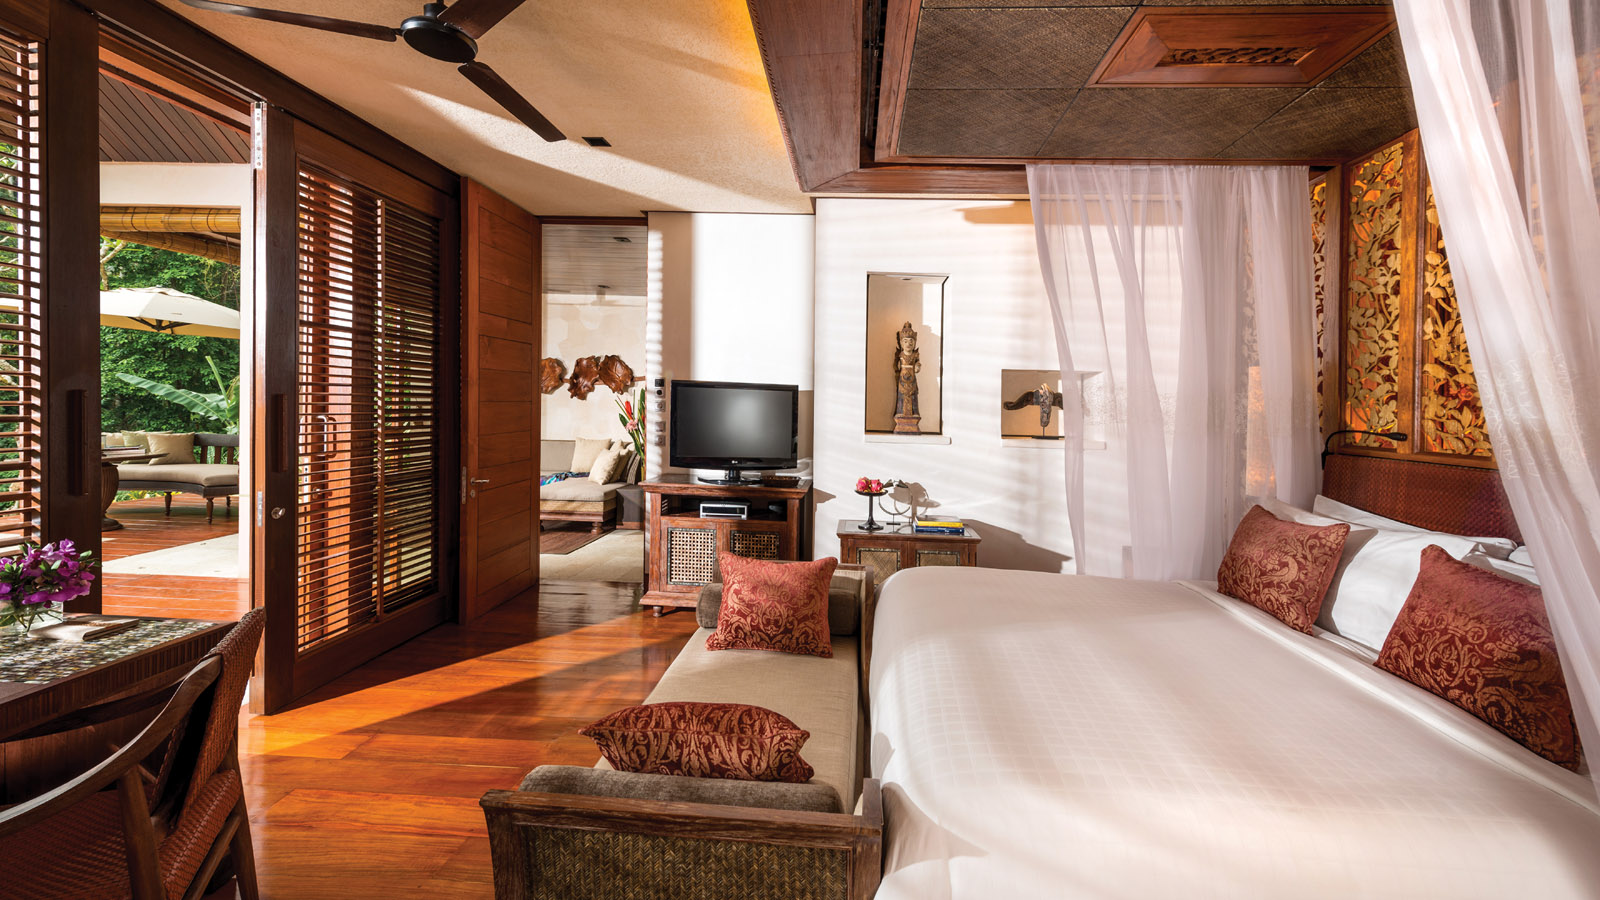 Check Out Room Rates at Four Seasons Resort Bali at Sayan, a Luxury Resort in Bali